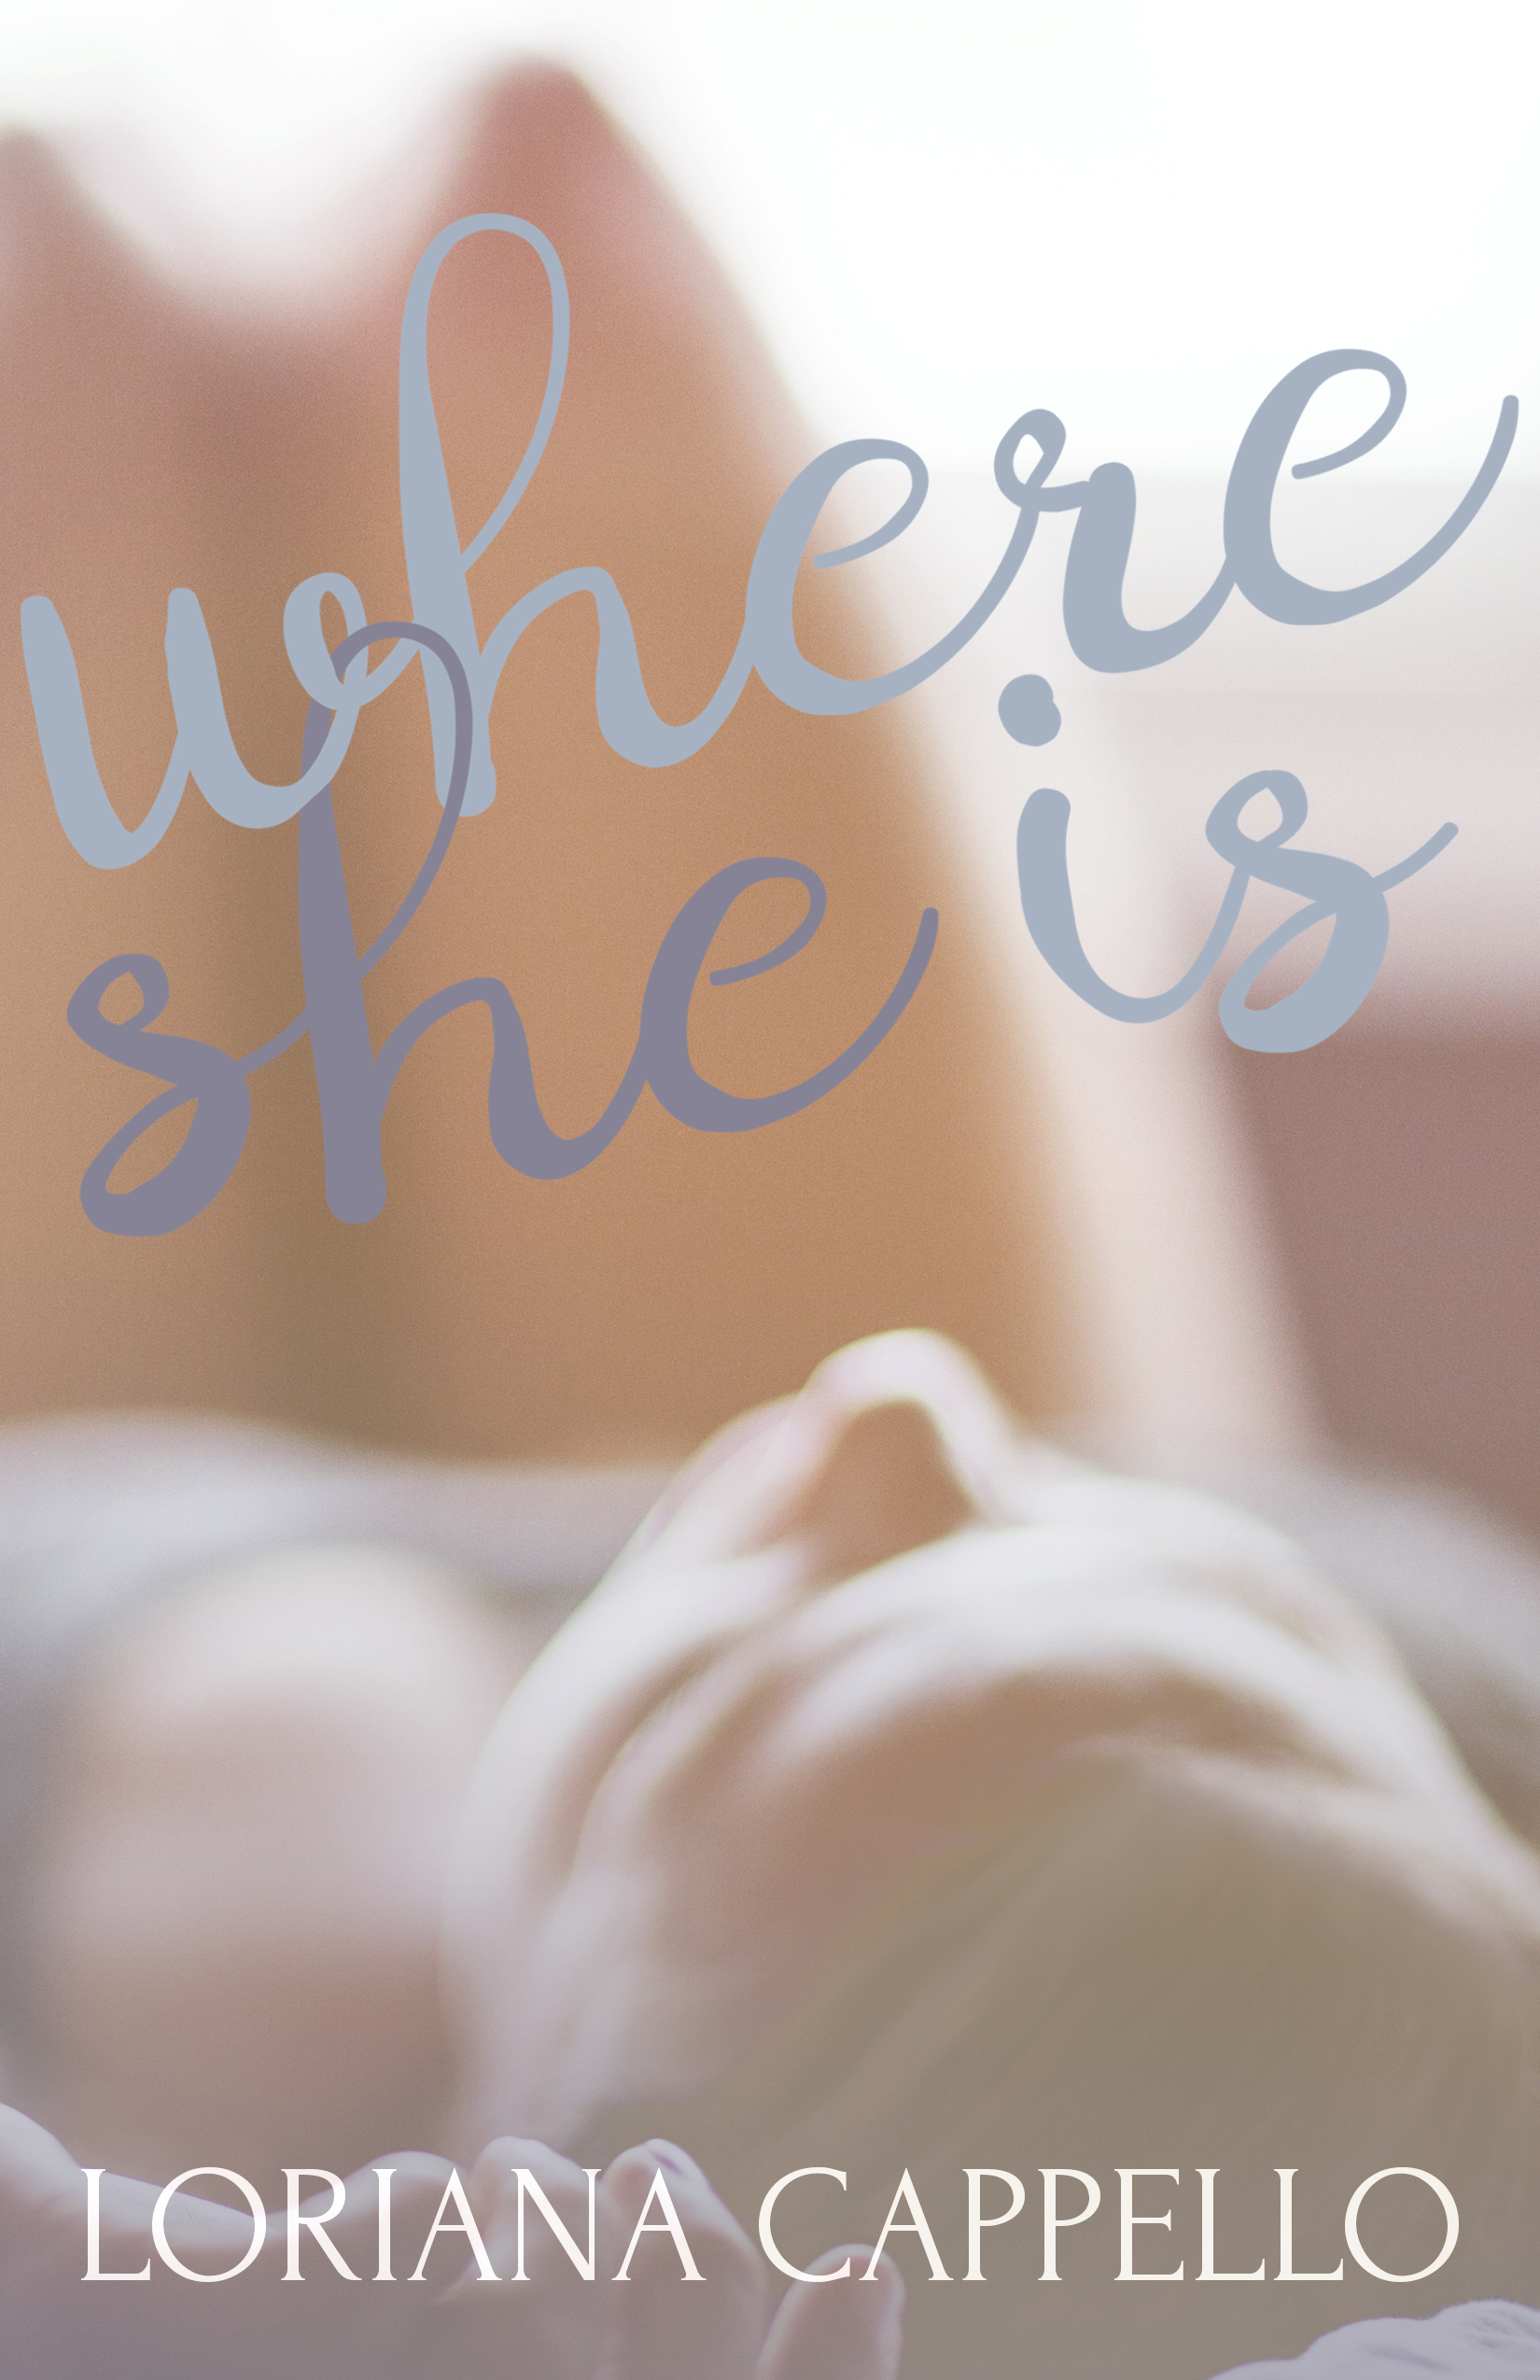 Where She Is by Loriana Cappello